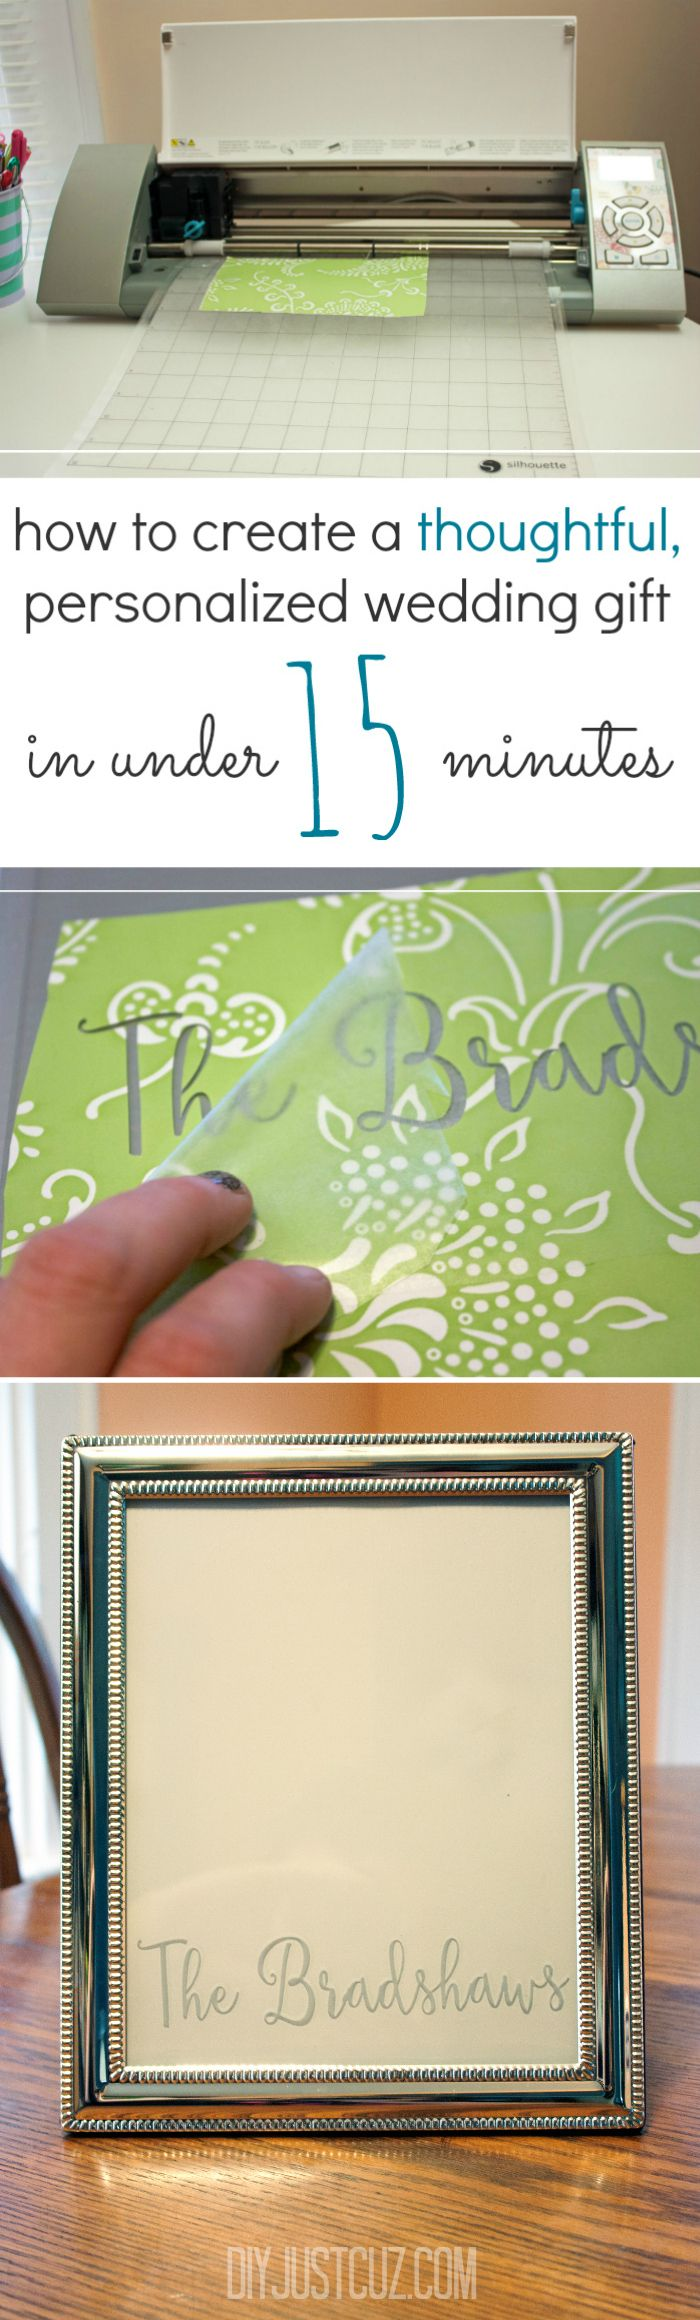 Create A Personalized Wedding Gift In Under 15 Minutes